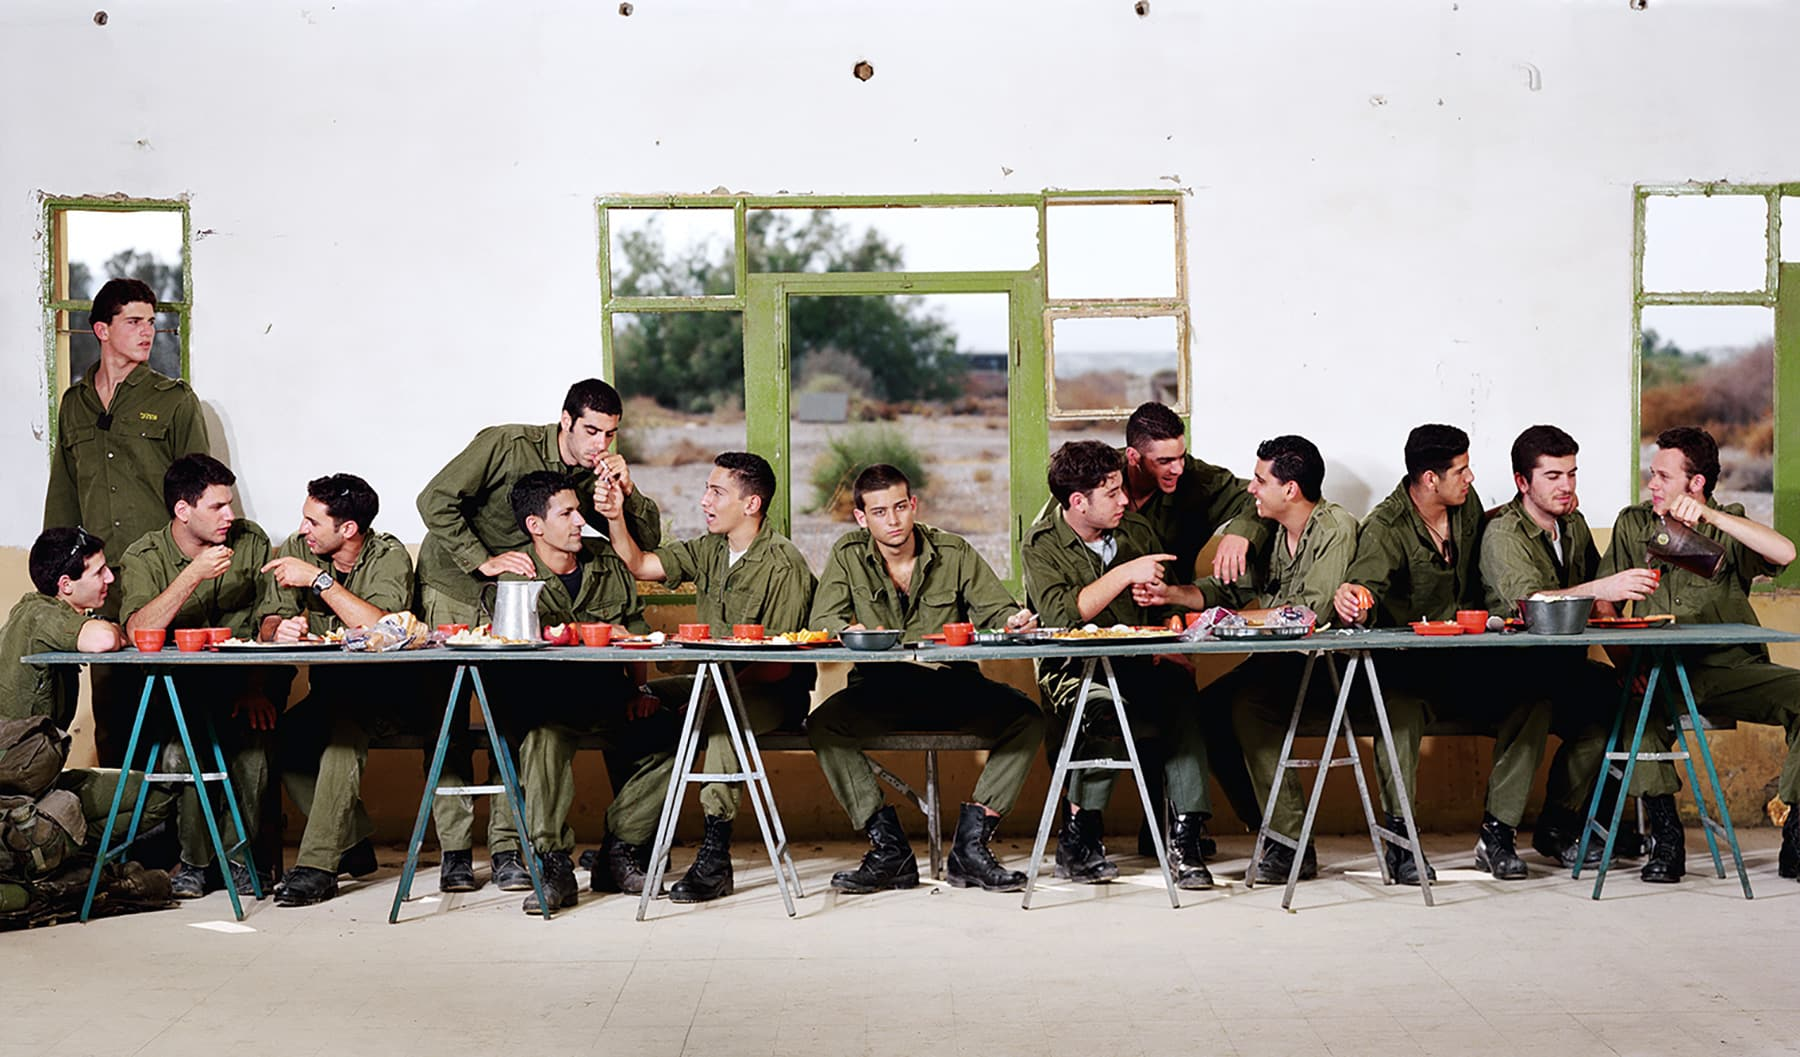 Untitled (The Last Supper Before Going Out to Battle), 1996, by Adi Nes